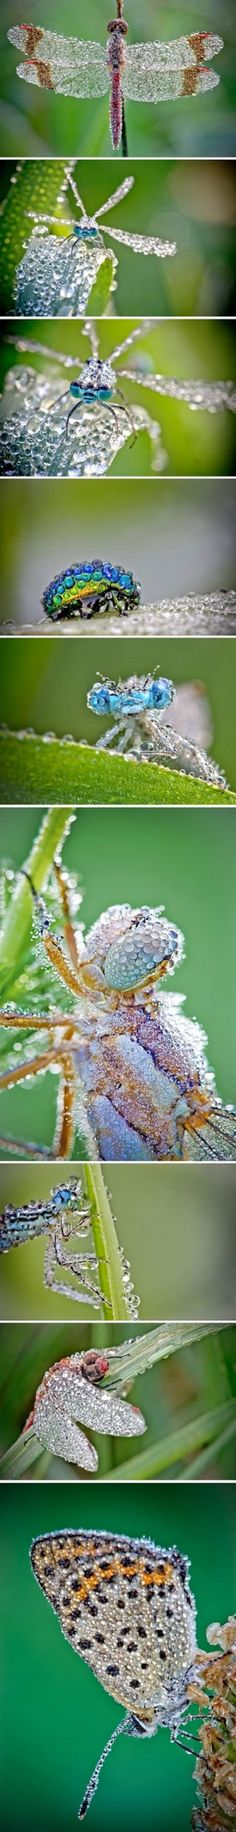 Dew dusted insects....